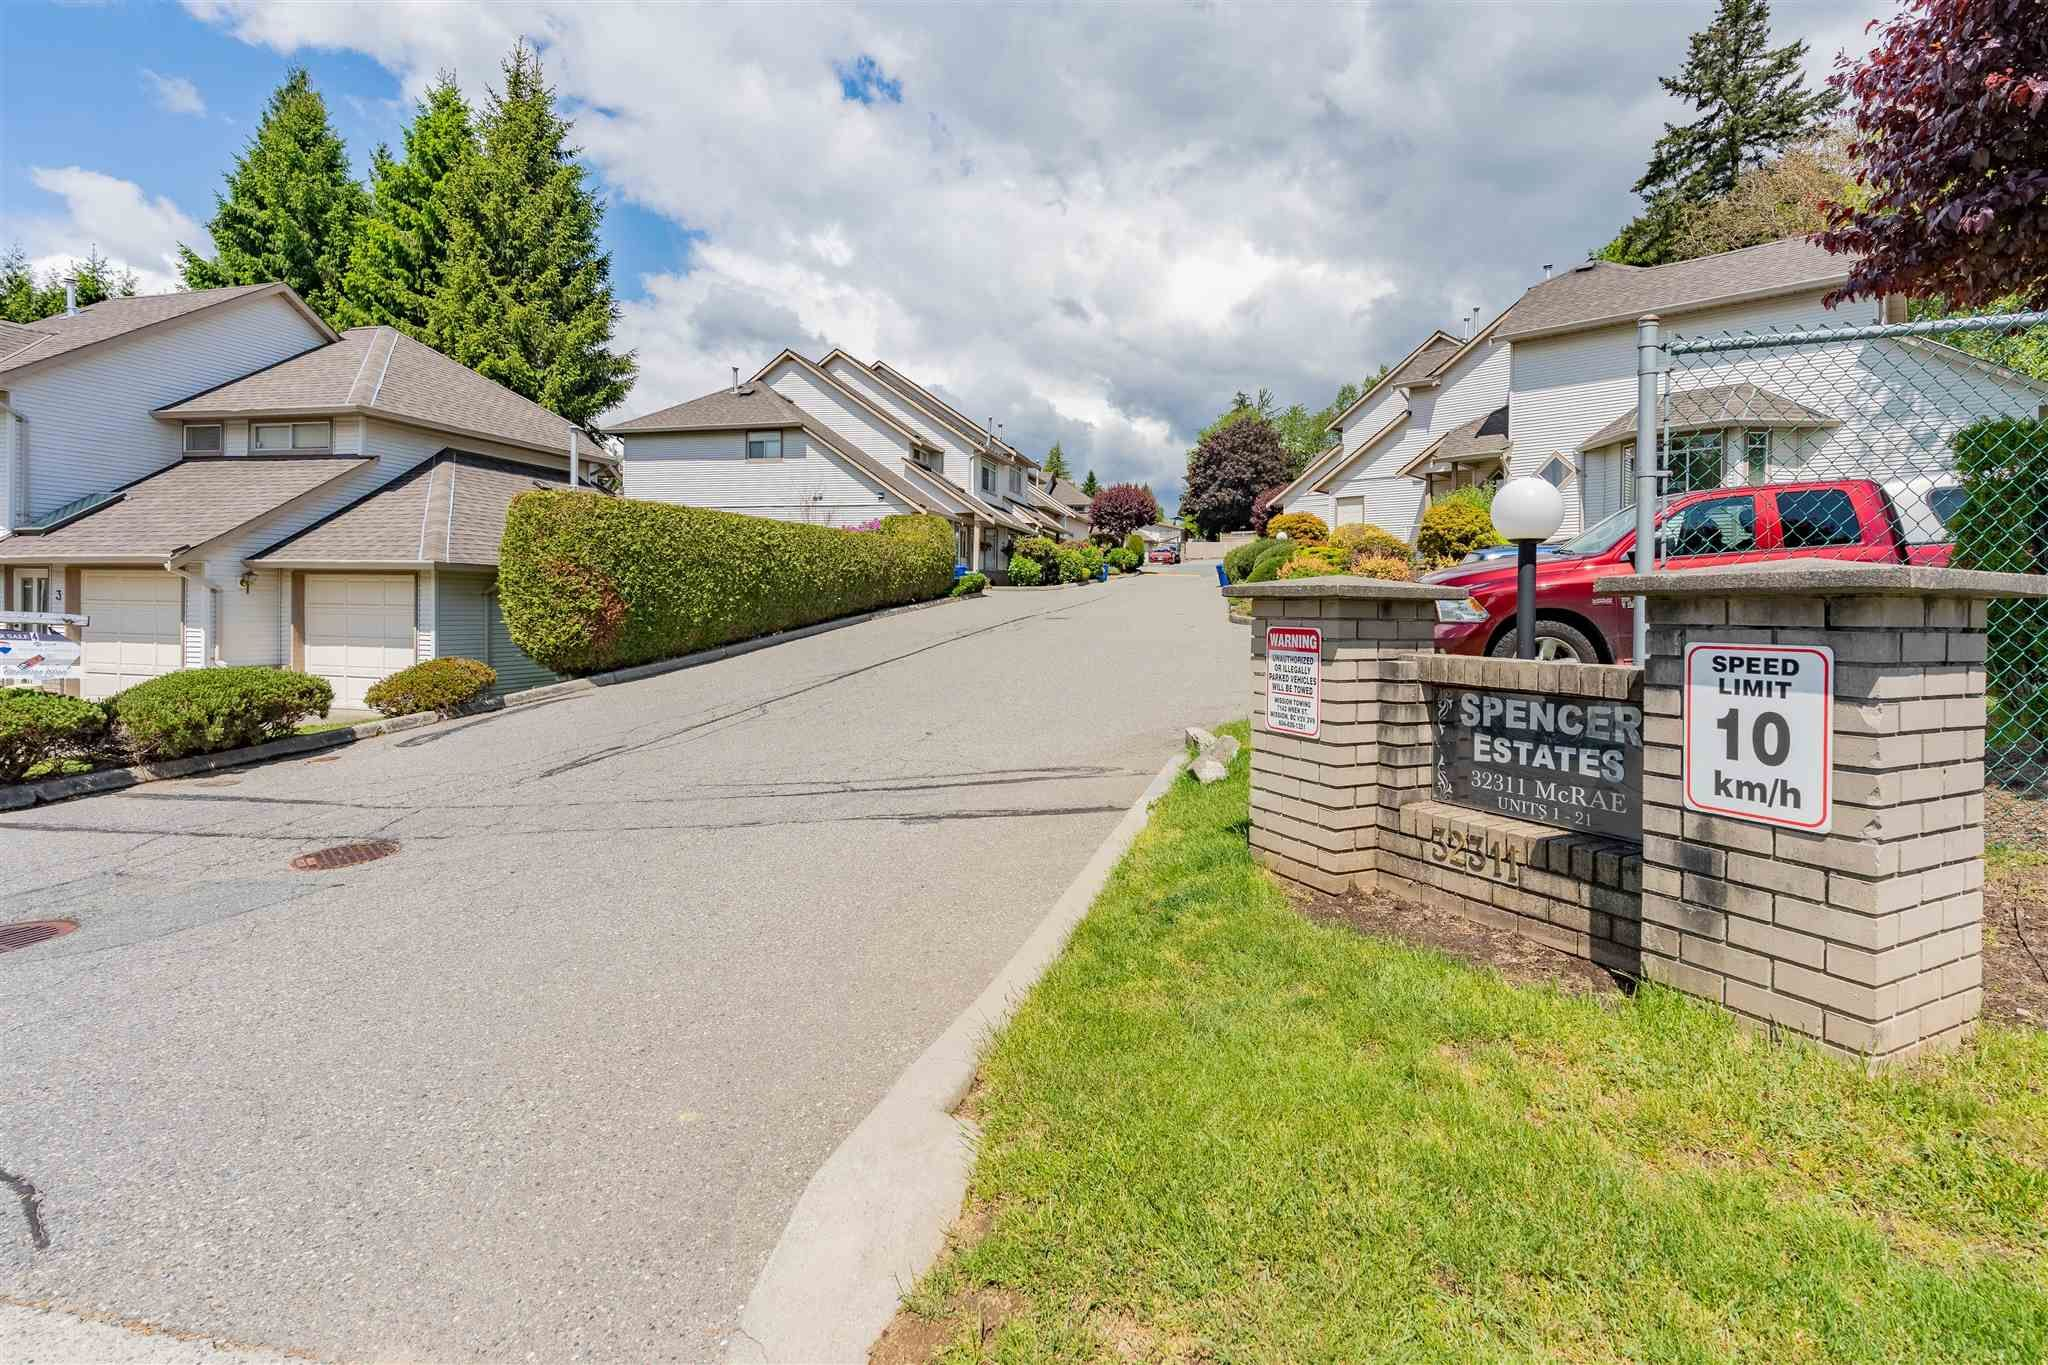 """Main Photo: 6 32311 MCRAE Avenue in Mission: Mission BC Townhouse for sale in """"Spencer Estates"""" : MLS®# R2600582"""